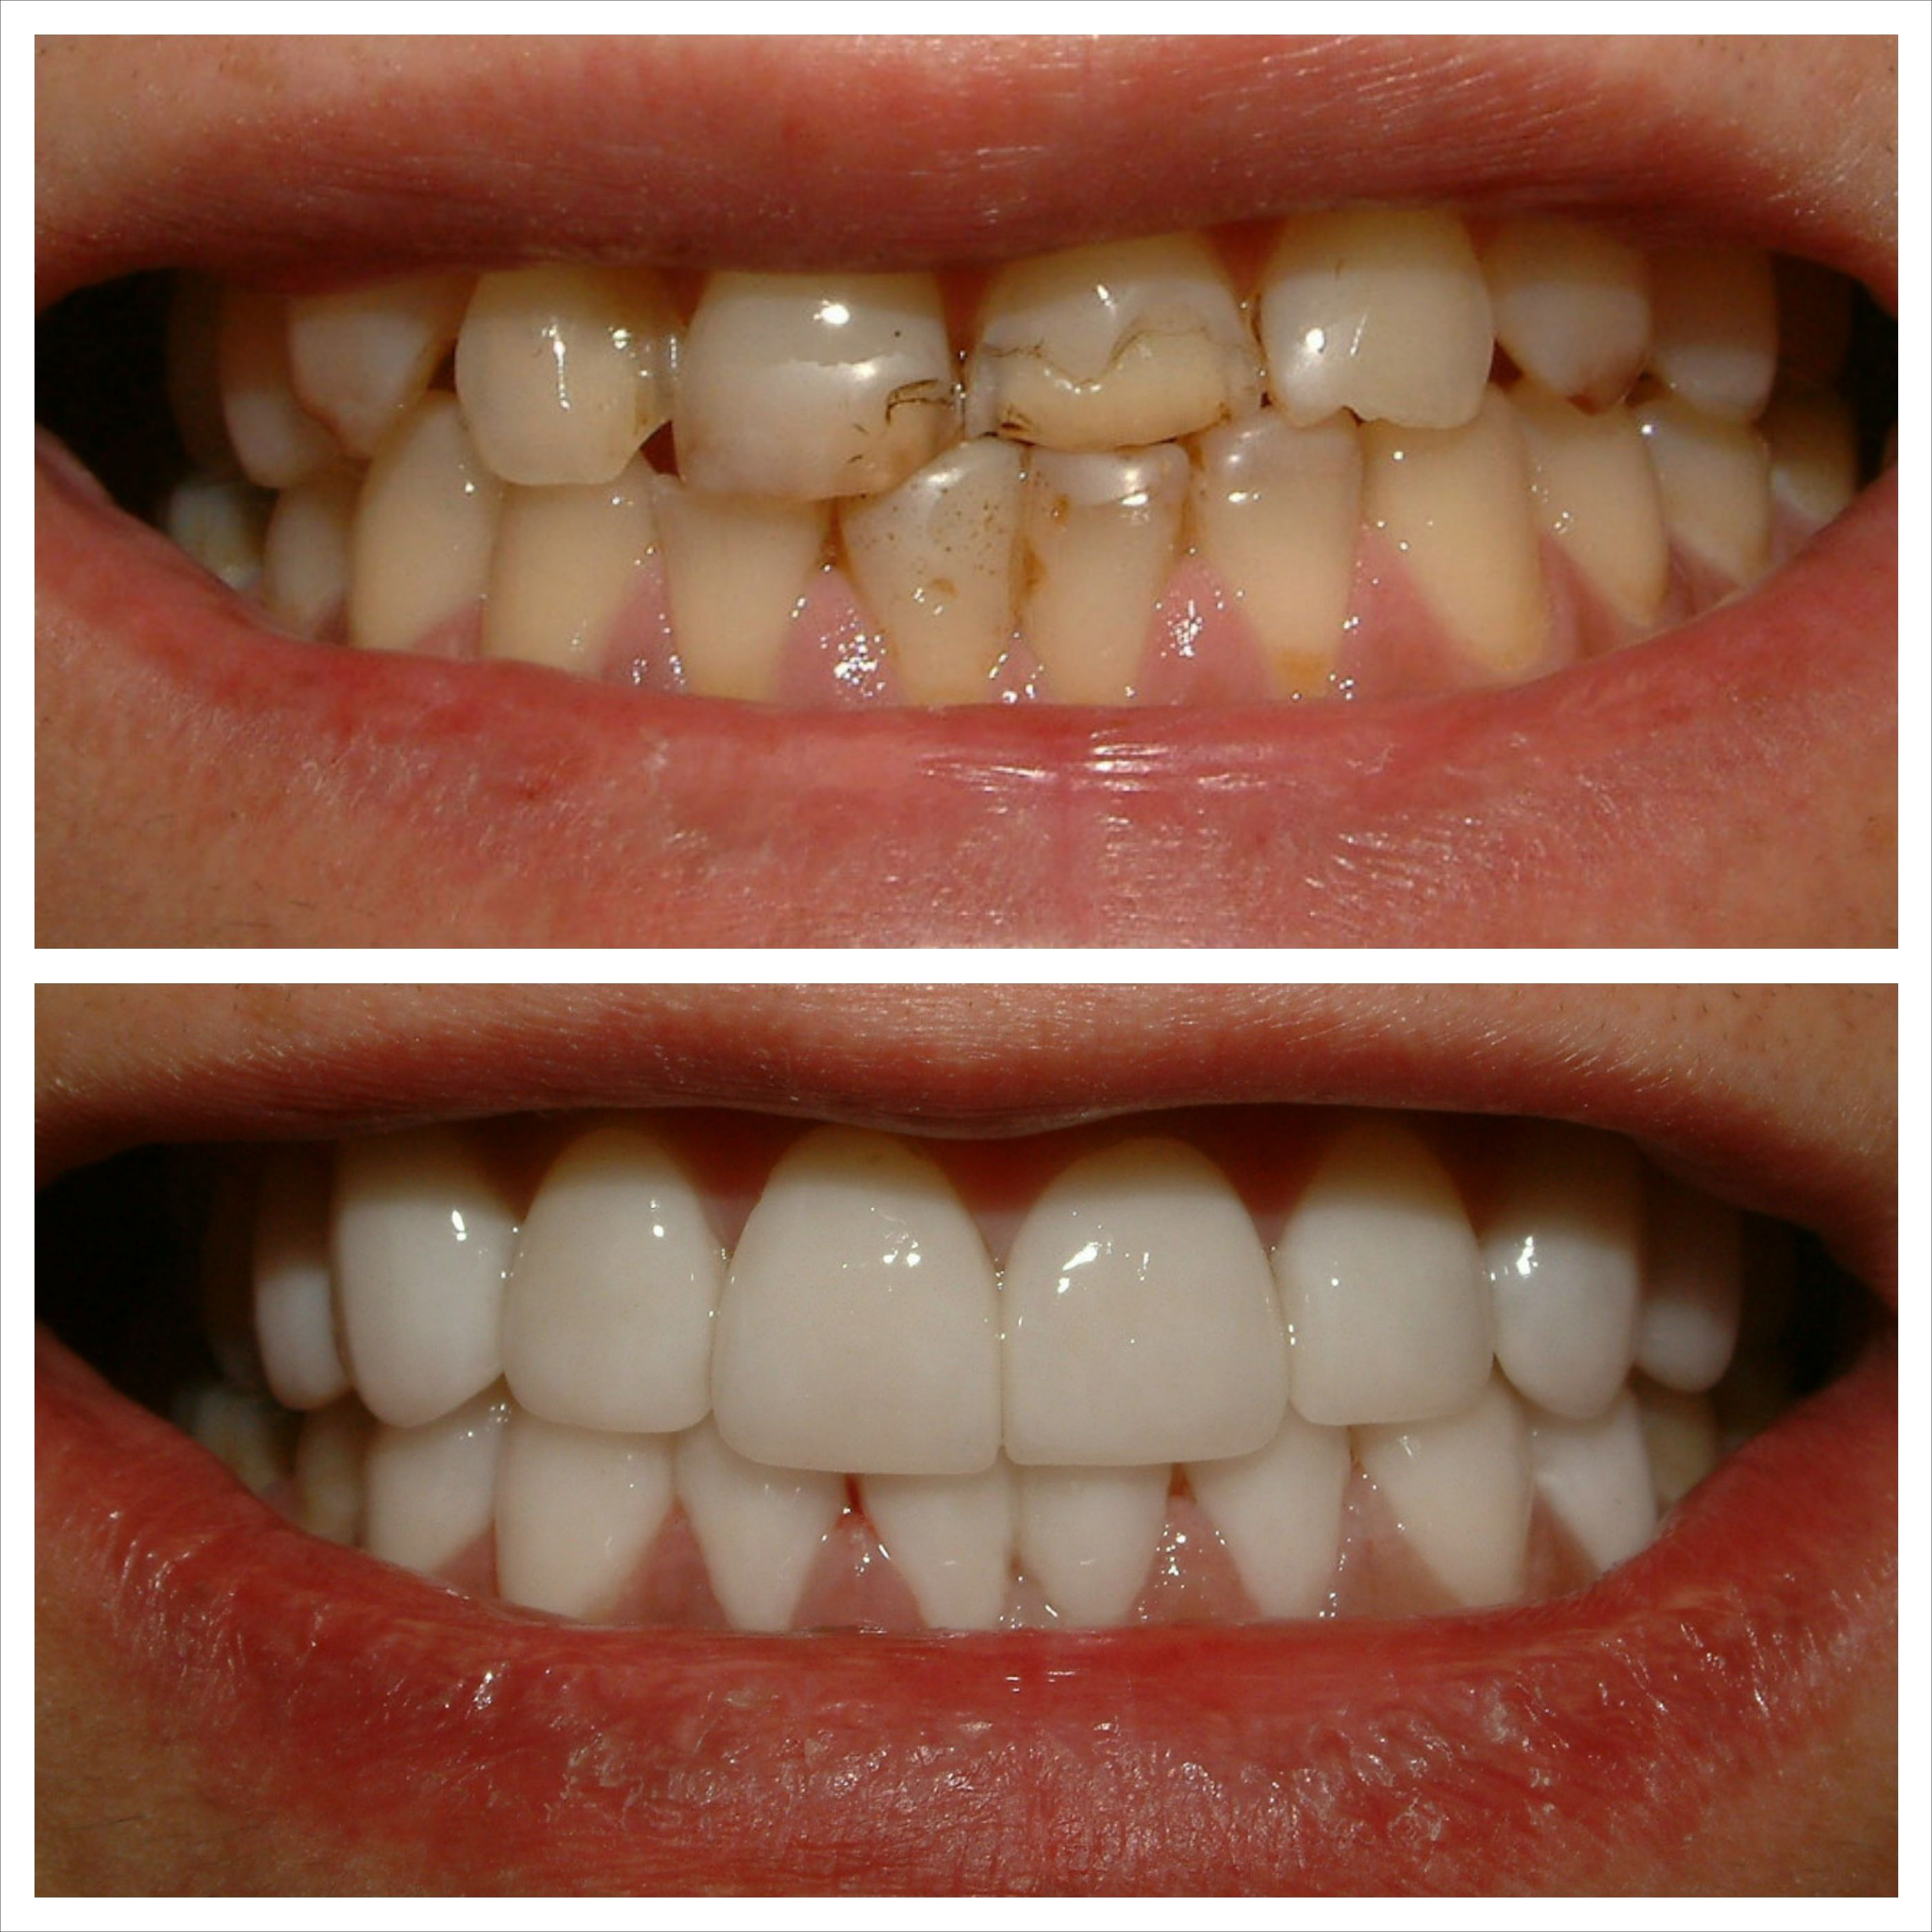 Take A Look At This Before After Invisalign And Veneers Call To Schedule Your Complimentary Consultation 416 800 4399 Dr Jeremy Kurtz Dds Www Invisi